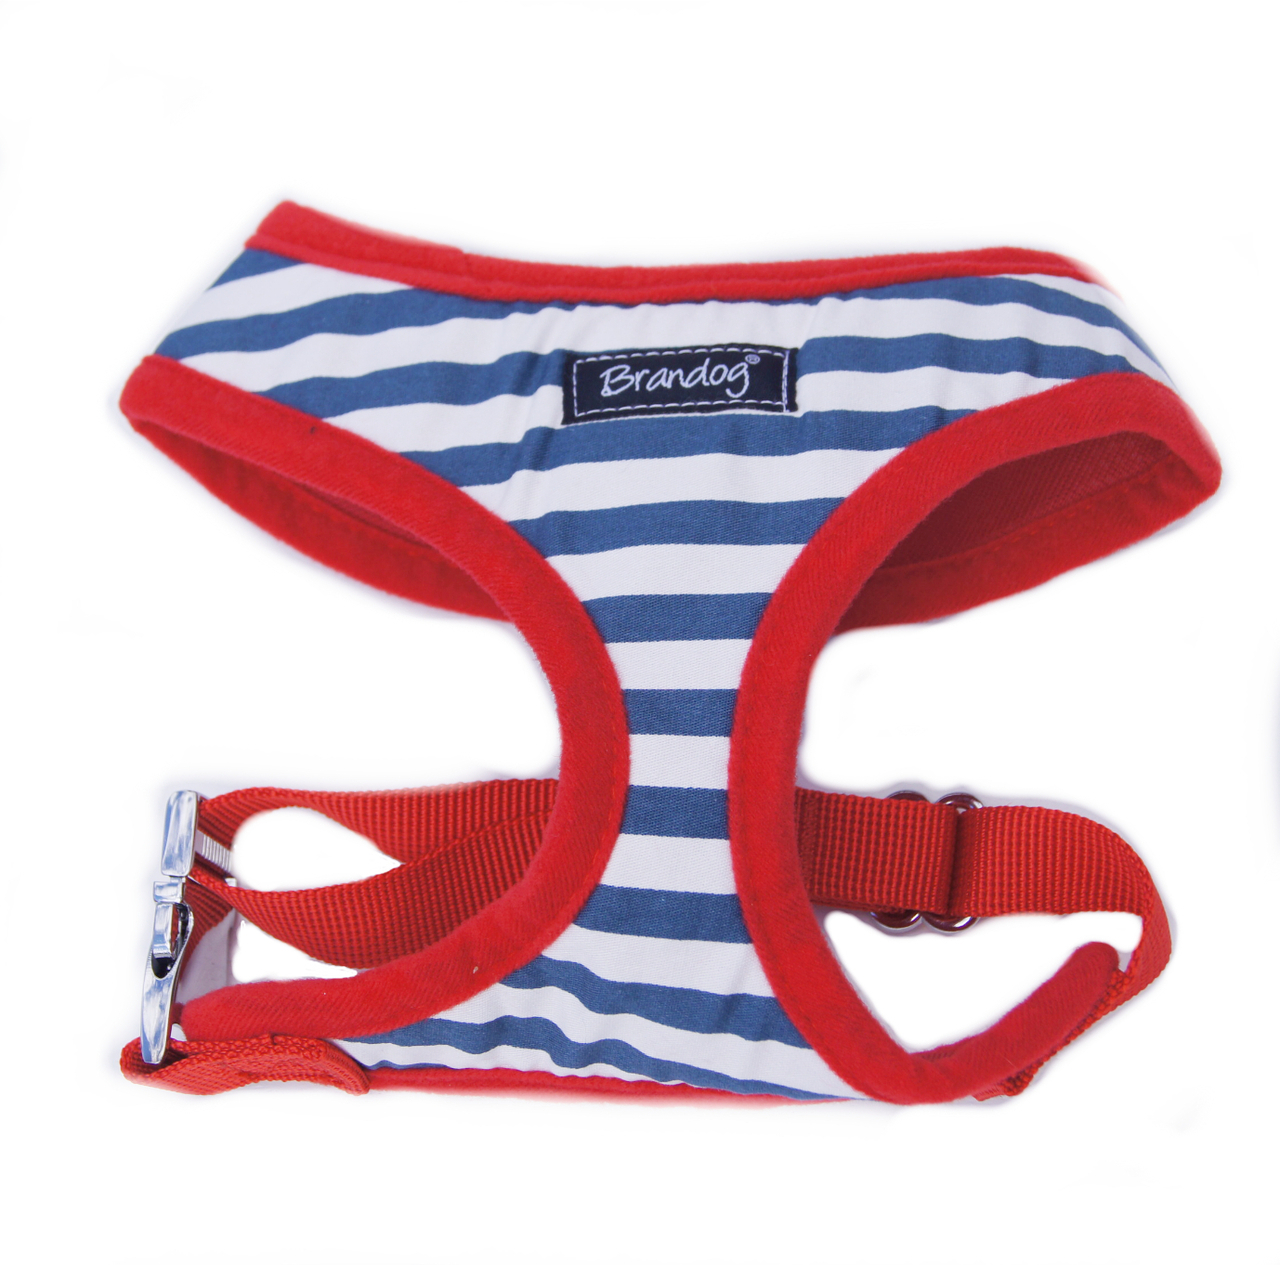 Brandog ''Nautical'' Harness + Leash Set